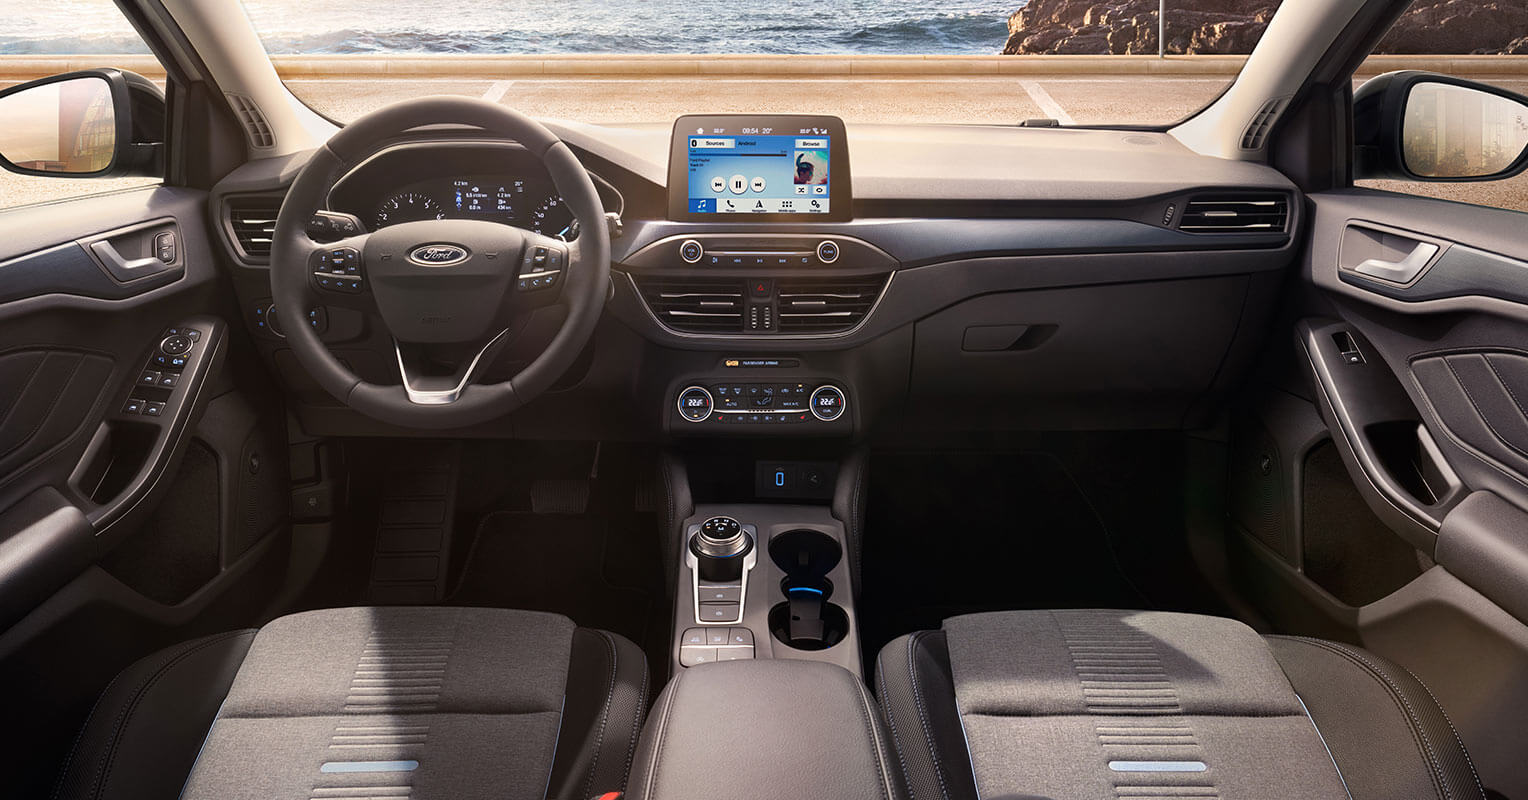 Ford Focus 2019 interior